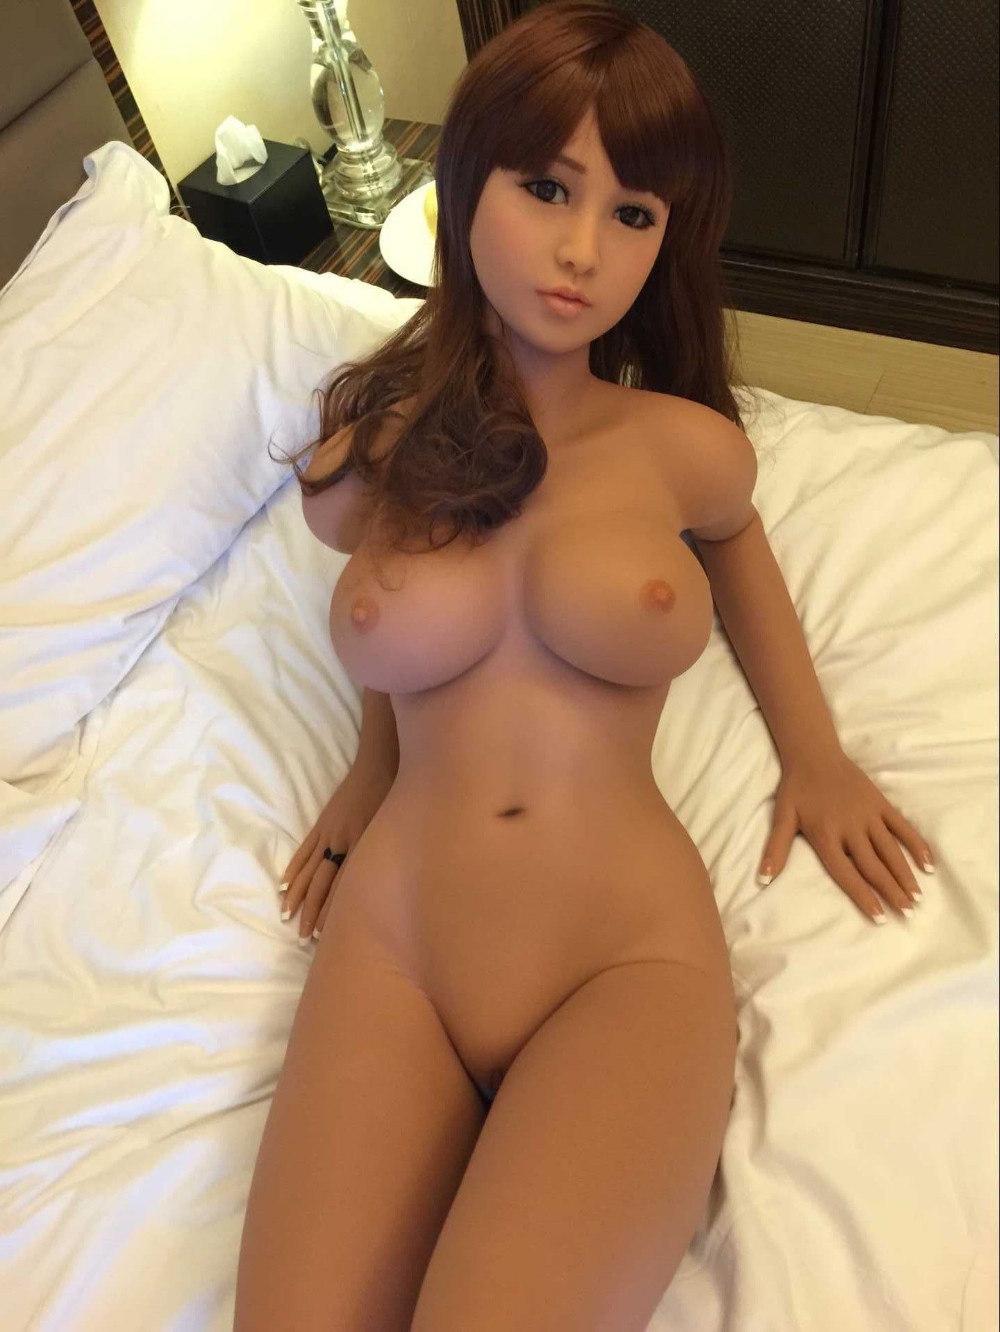 Sex Doll Japanese Teens Are 41